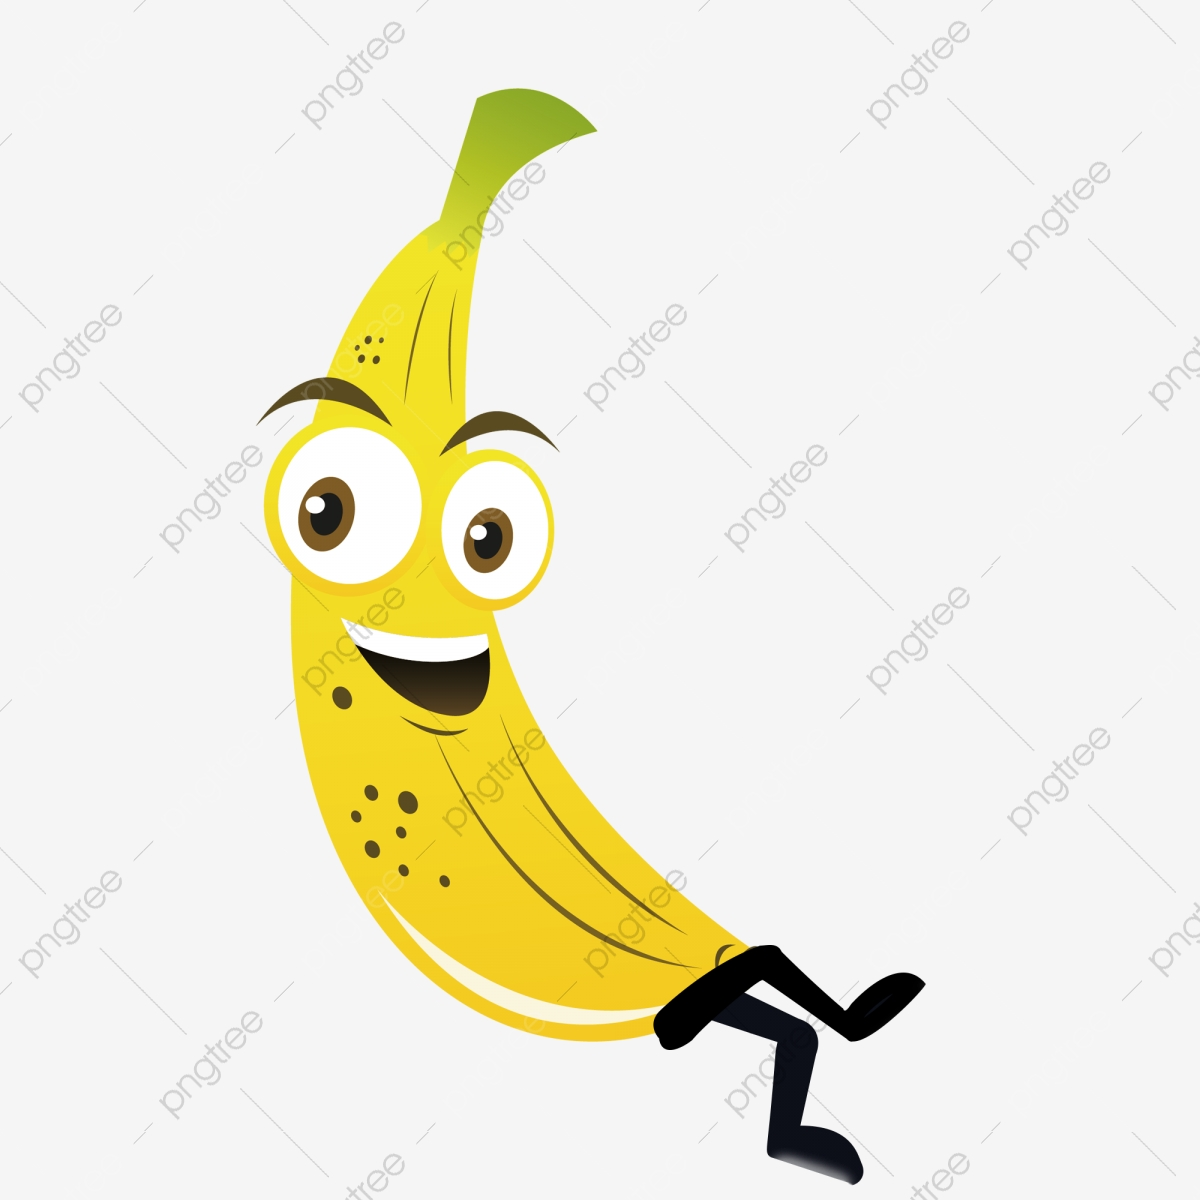 Banana smiley. Clipart cartoon png and